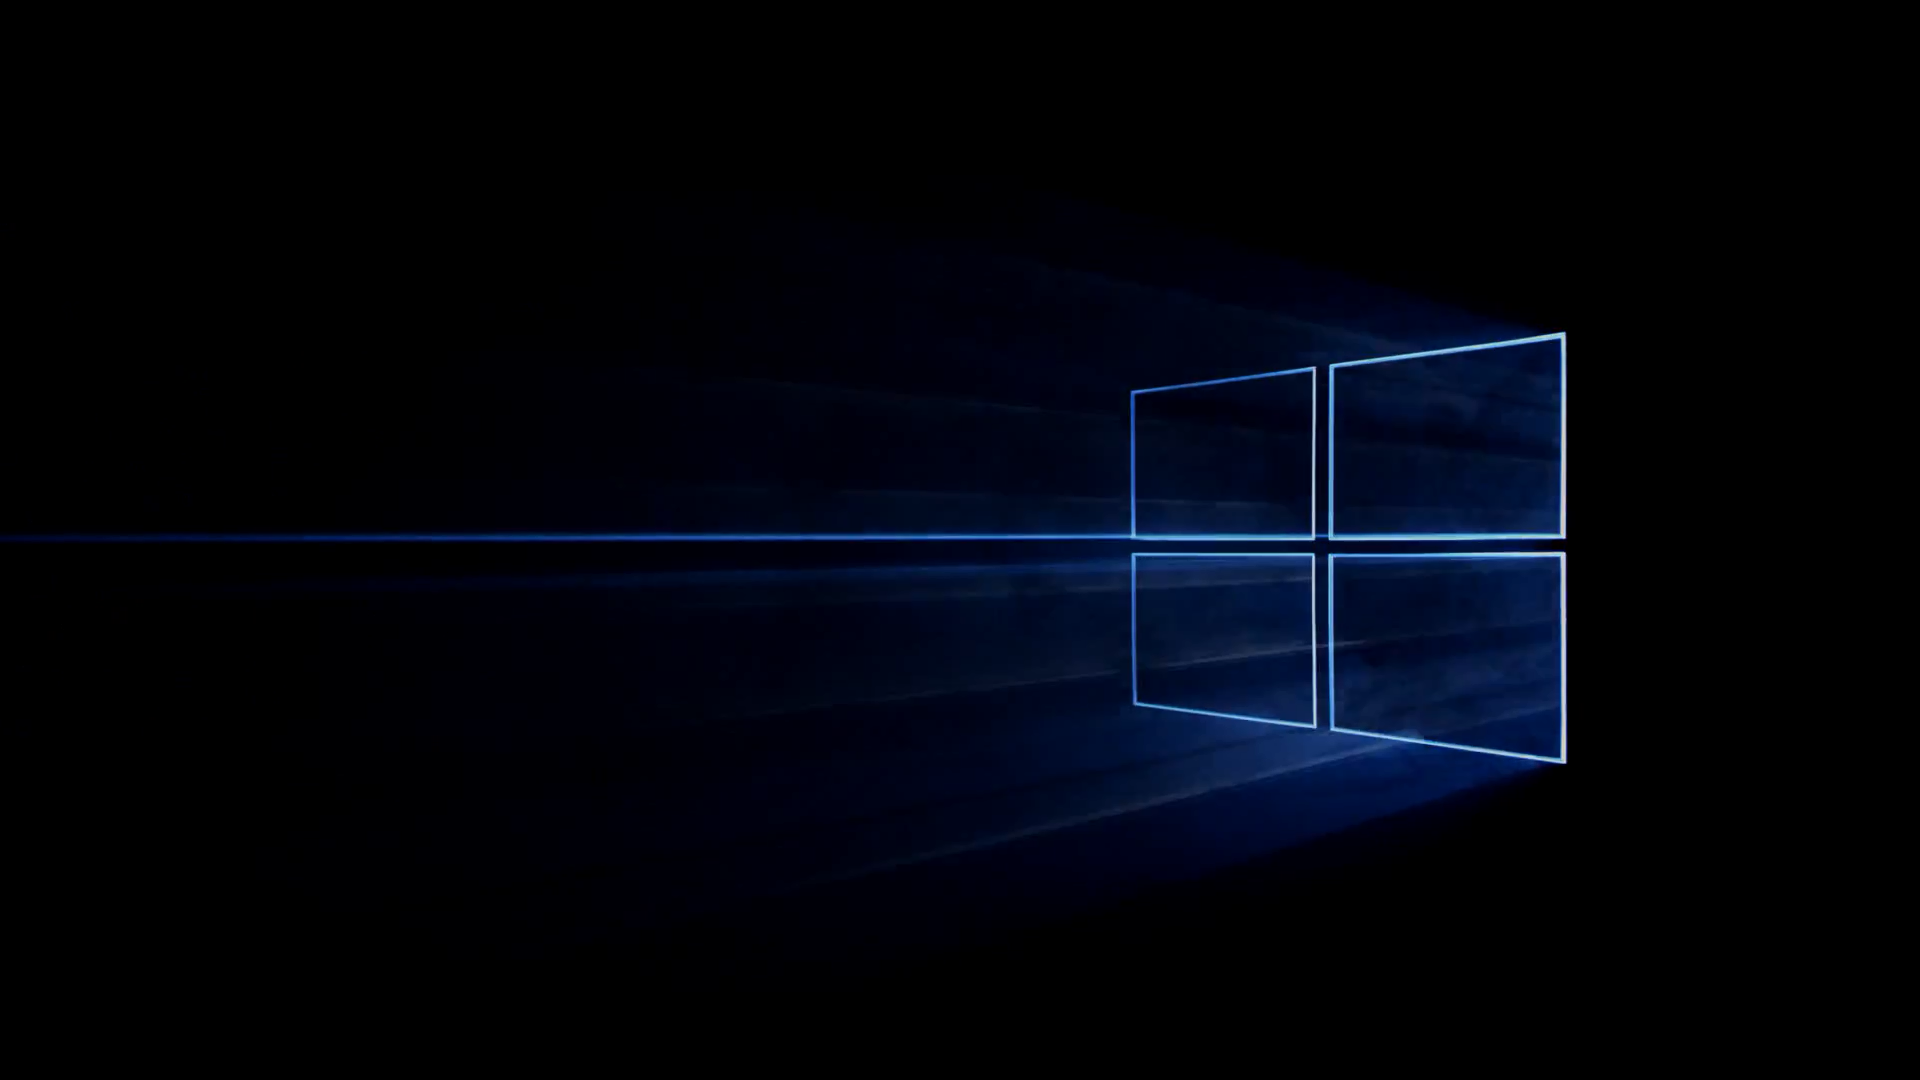 Windows 10 backgrounds pictures images for Microsoft win10